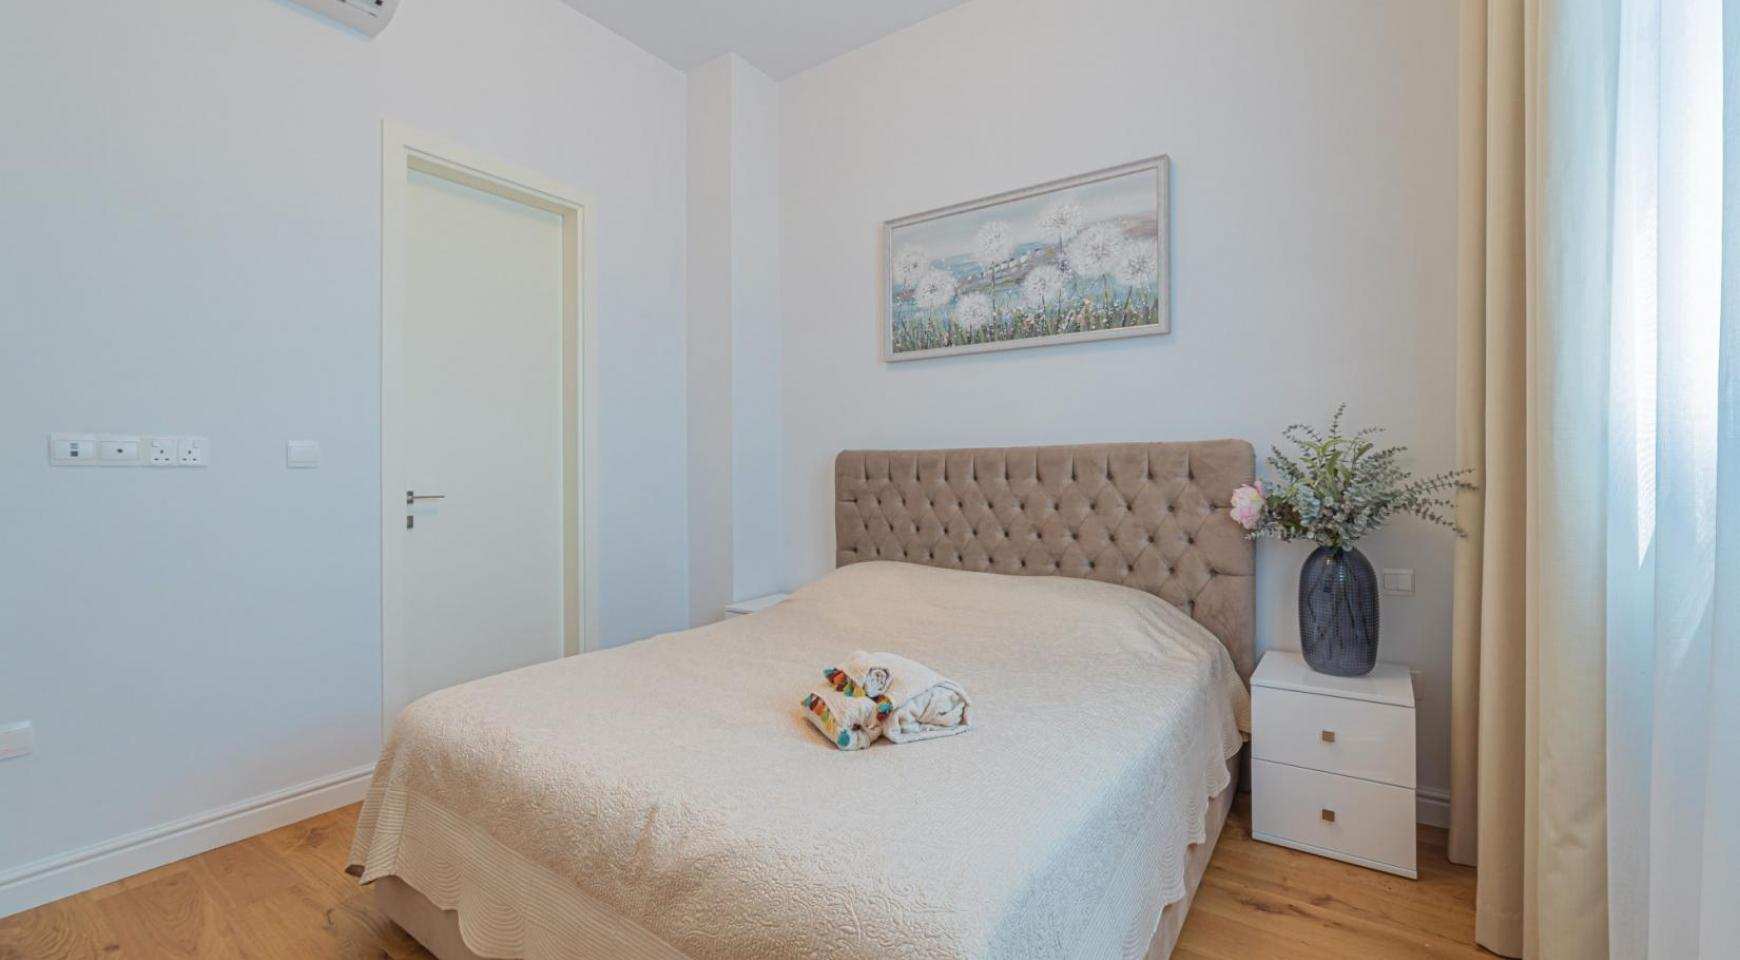 Hortensia Residence, Apt. 302. 2 Bedroom Apartment within a New Complex near the Sea  - 62